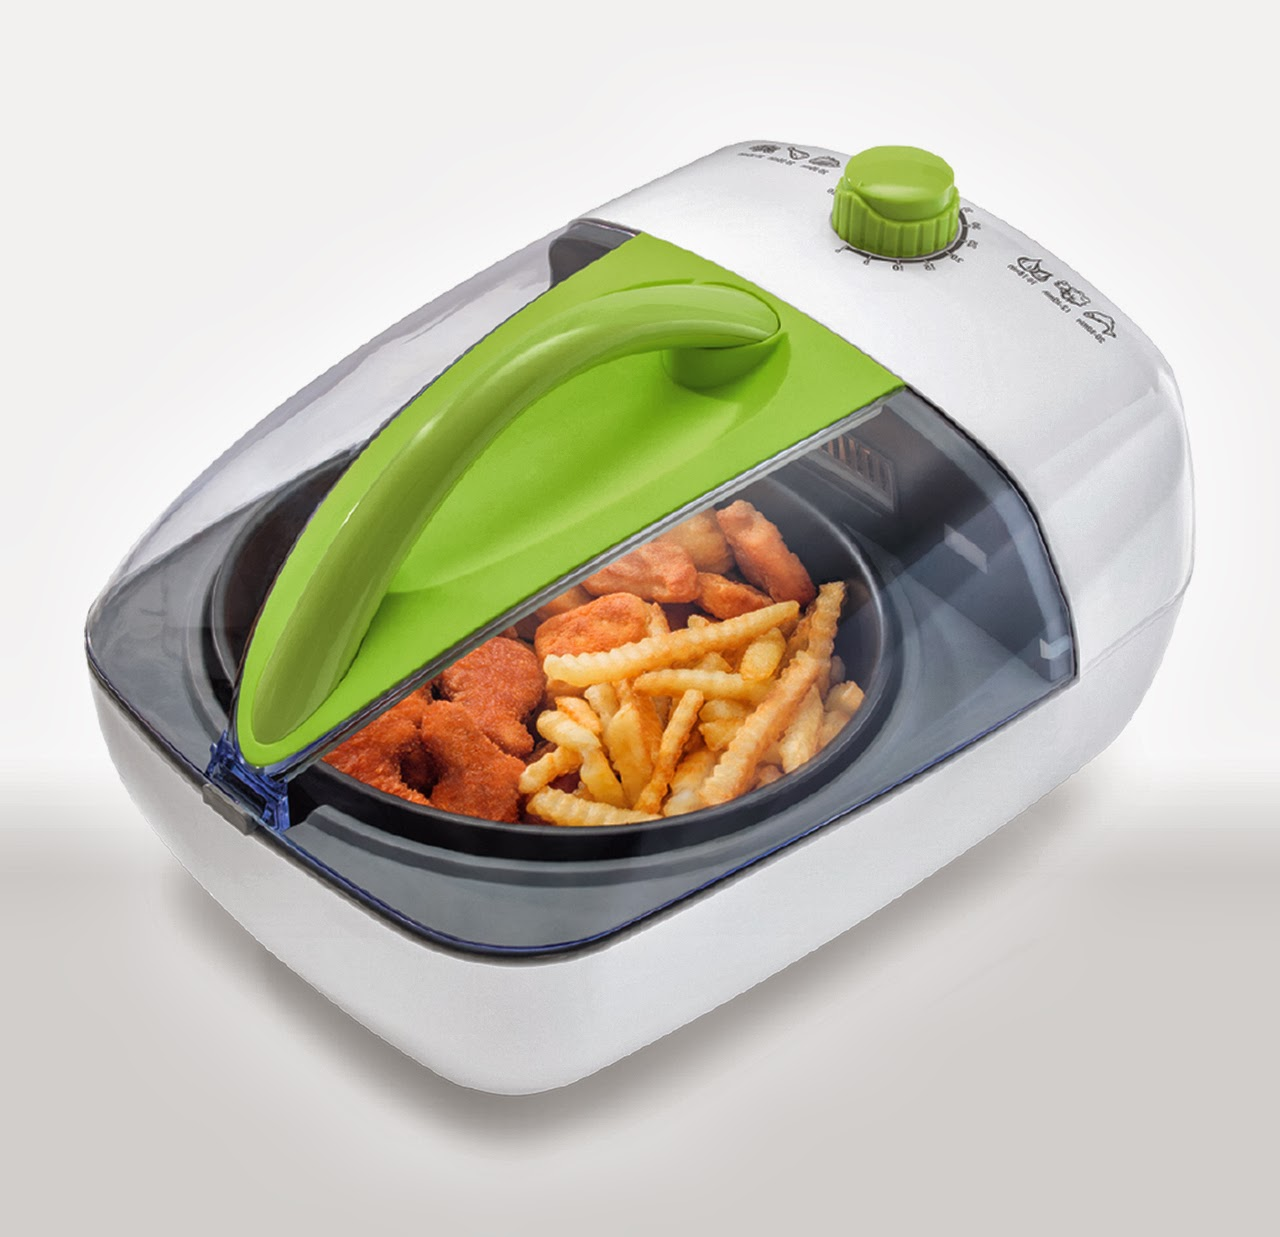 Enter to win the Jet Fryer Giveaway. Ends 9/14.